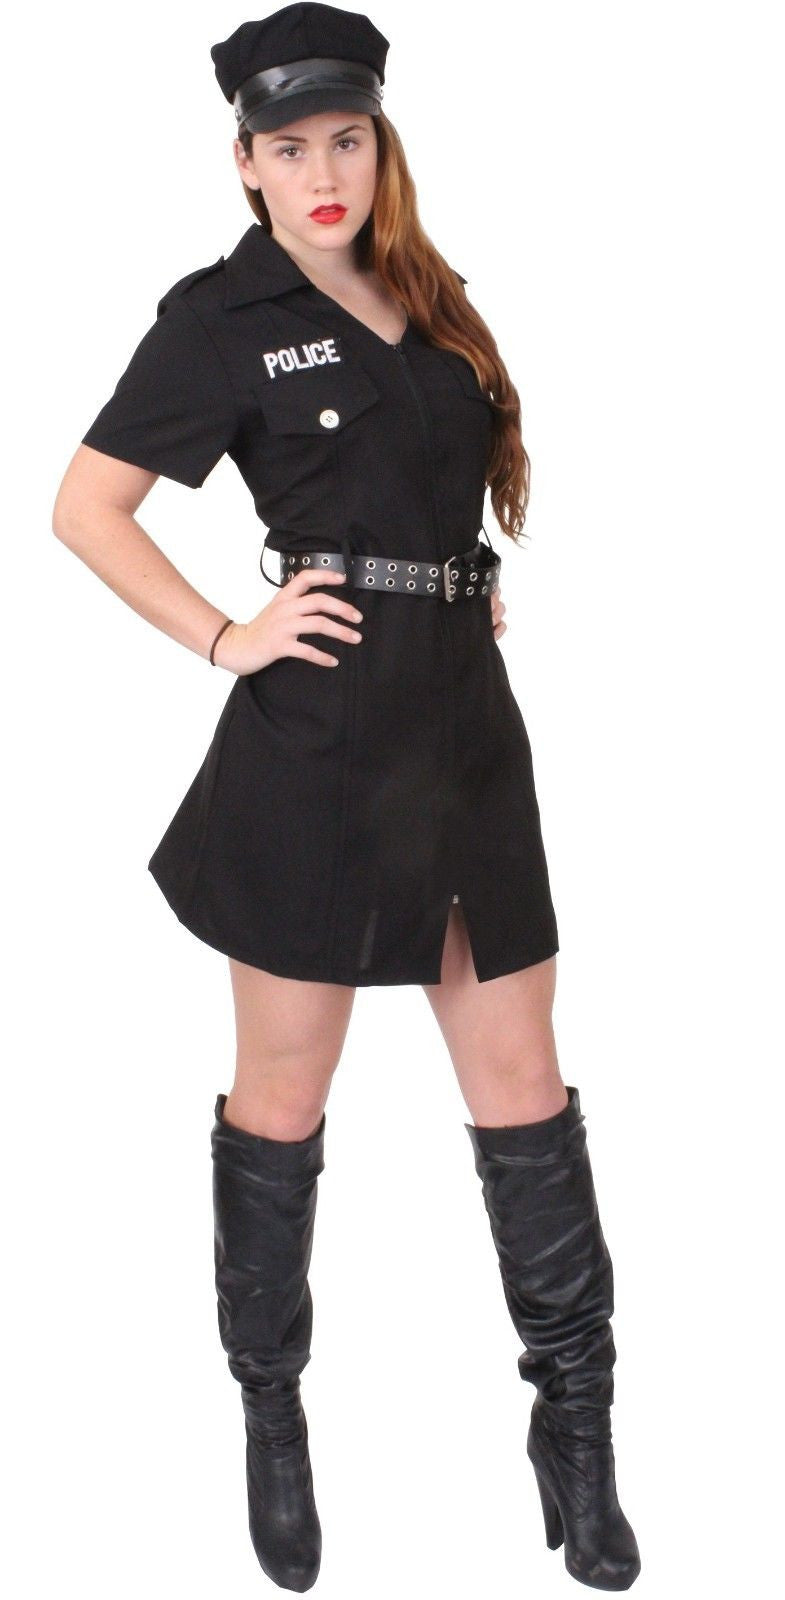 Womens Police Costume - Girls Officer Outfit - Halloween Dress Up Sexy Police  sc 1 st  Grunt Force & Womens Police Costume - Girls Officer Outfit - Halloween Dress Up ...